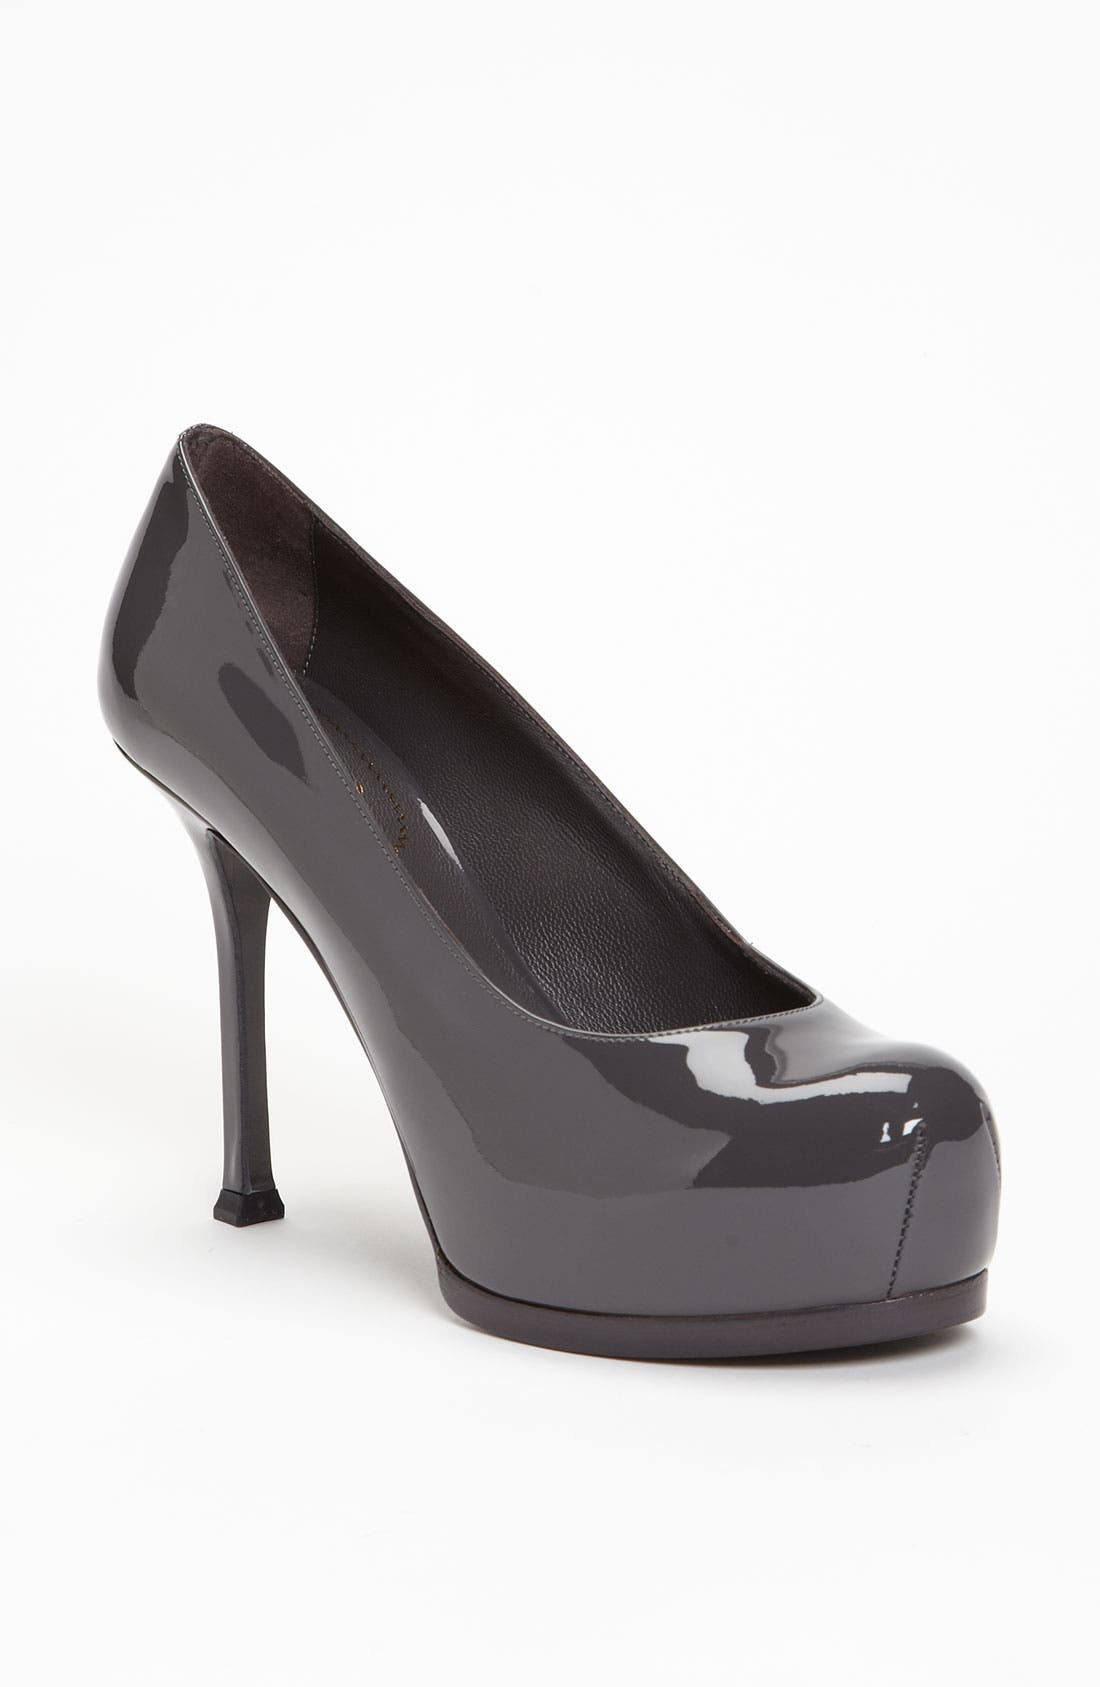 Alternate Image 1 Selected - Yves Saint Laurent 'Tribtoo' Pump